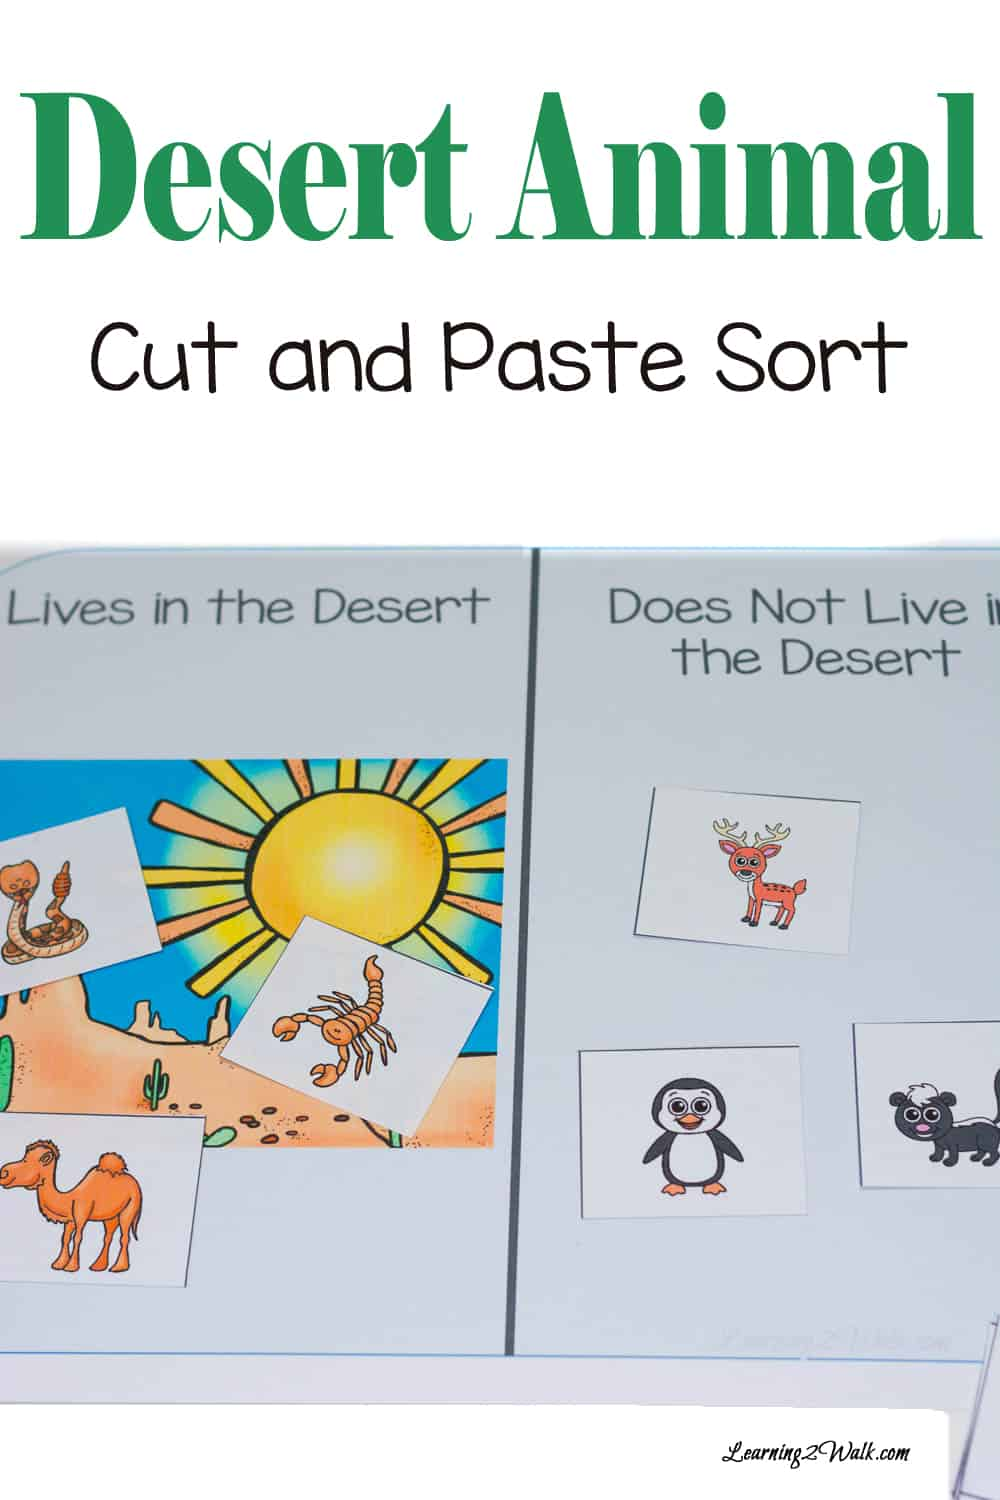 Desert Animal Cut and Paste Sort